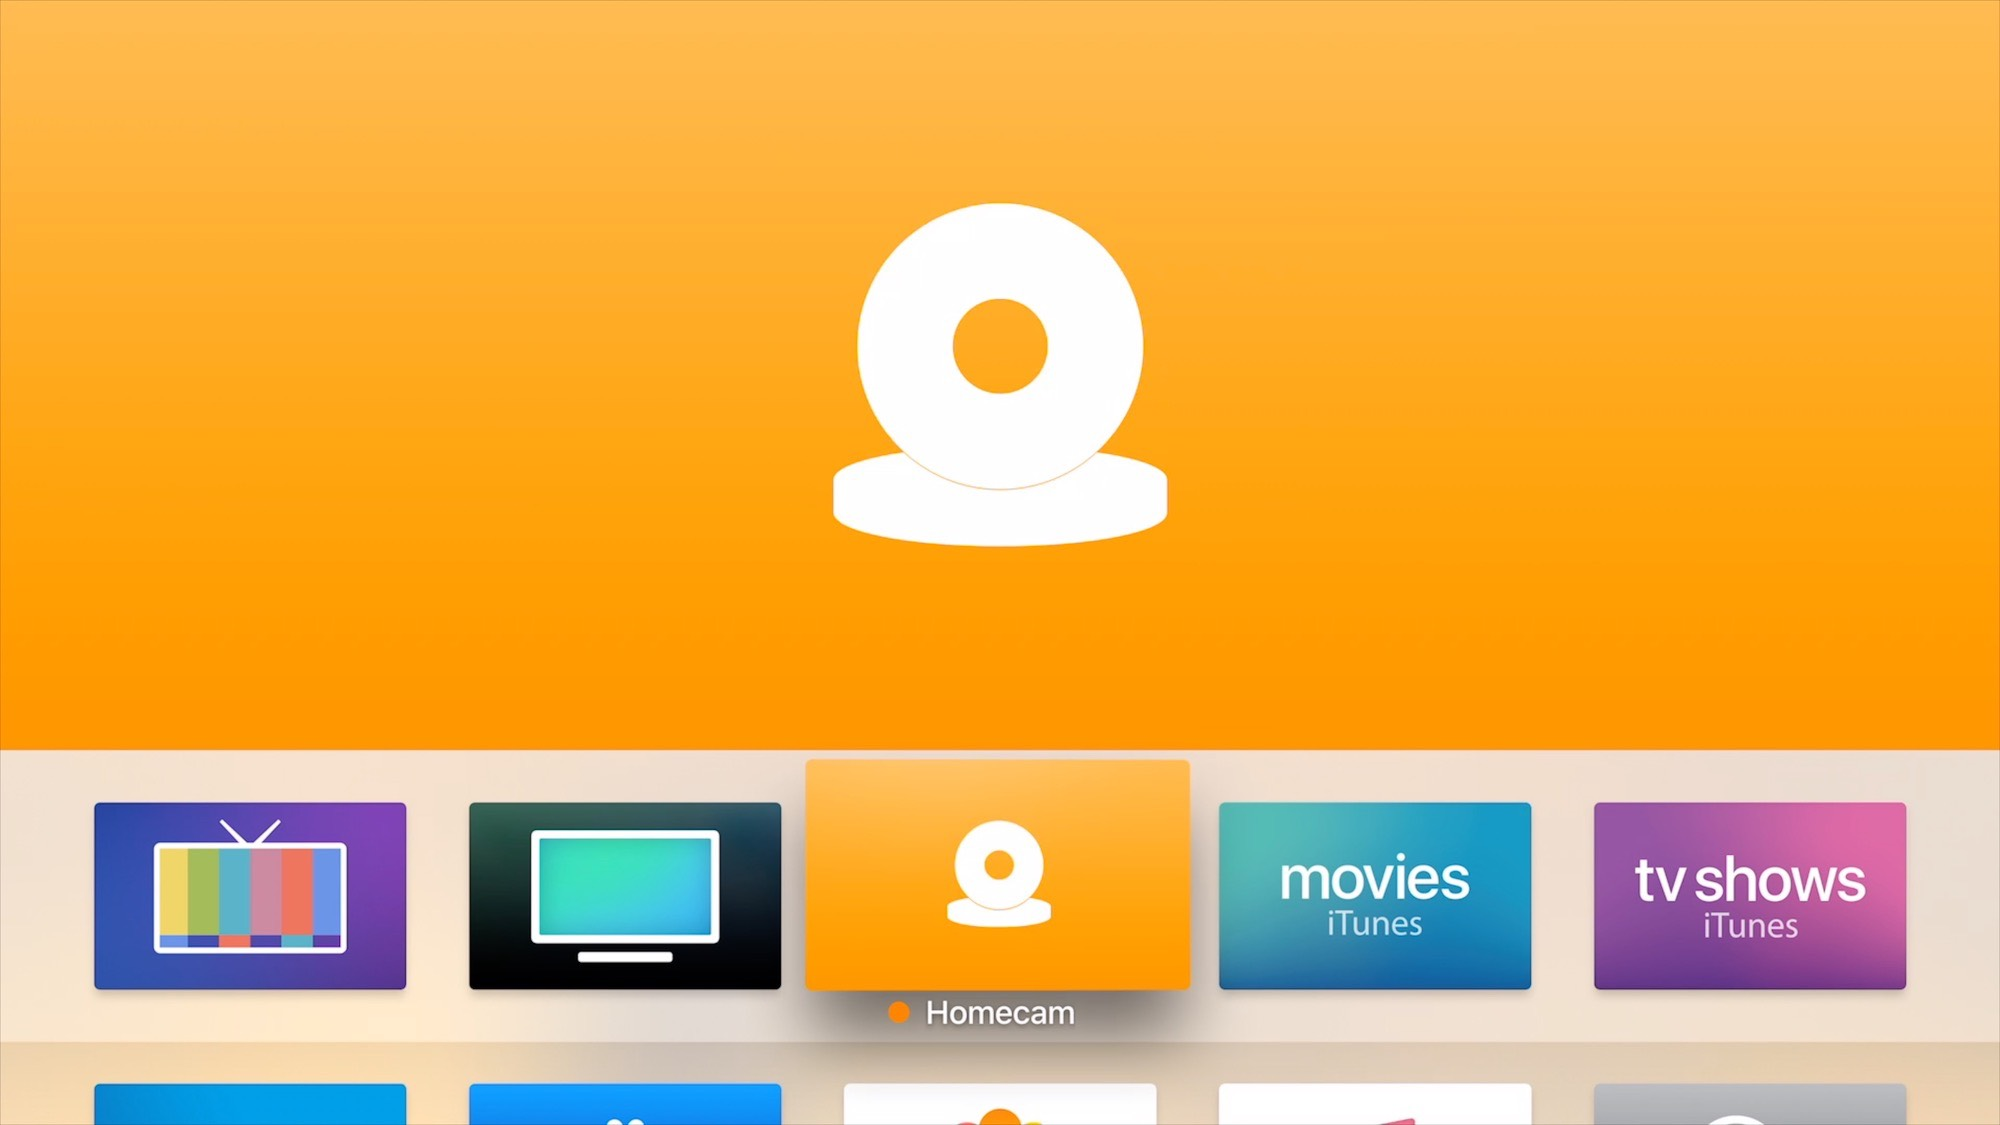 Homecam app for viewing HomeKit cameras on Apple TV gets an